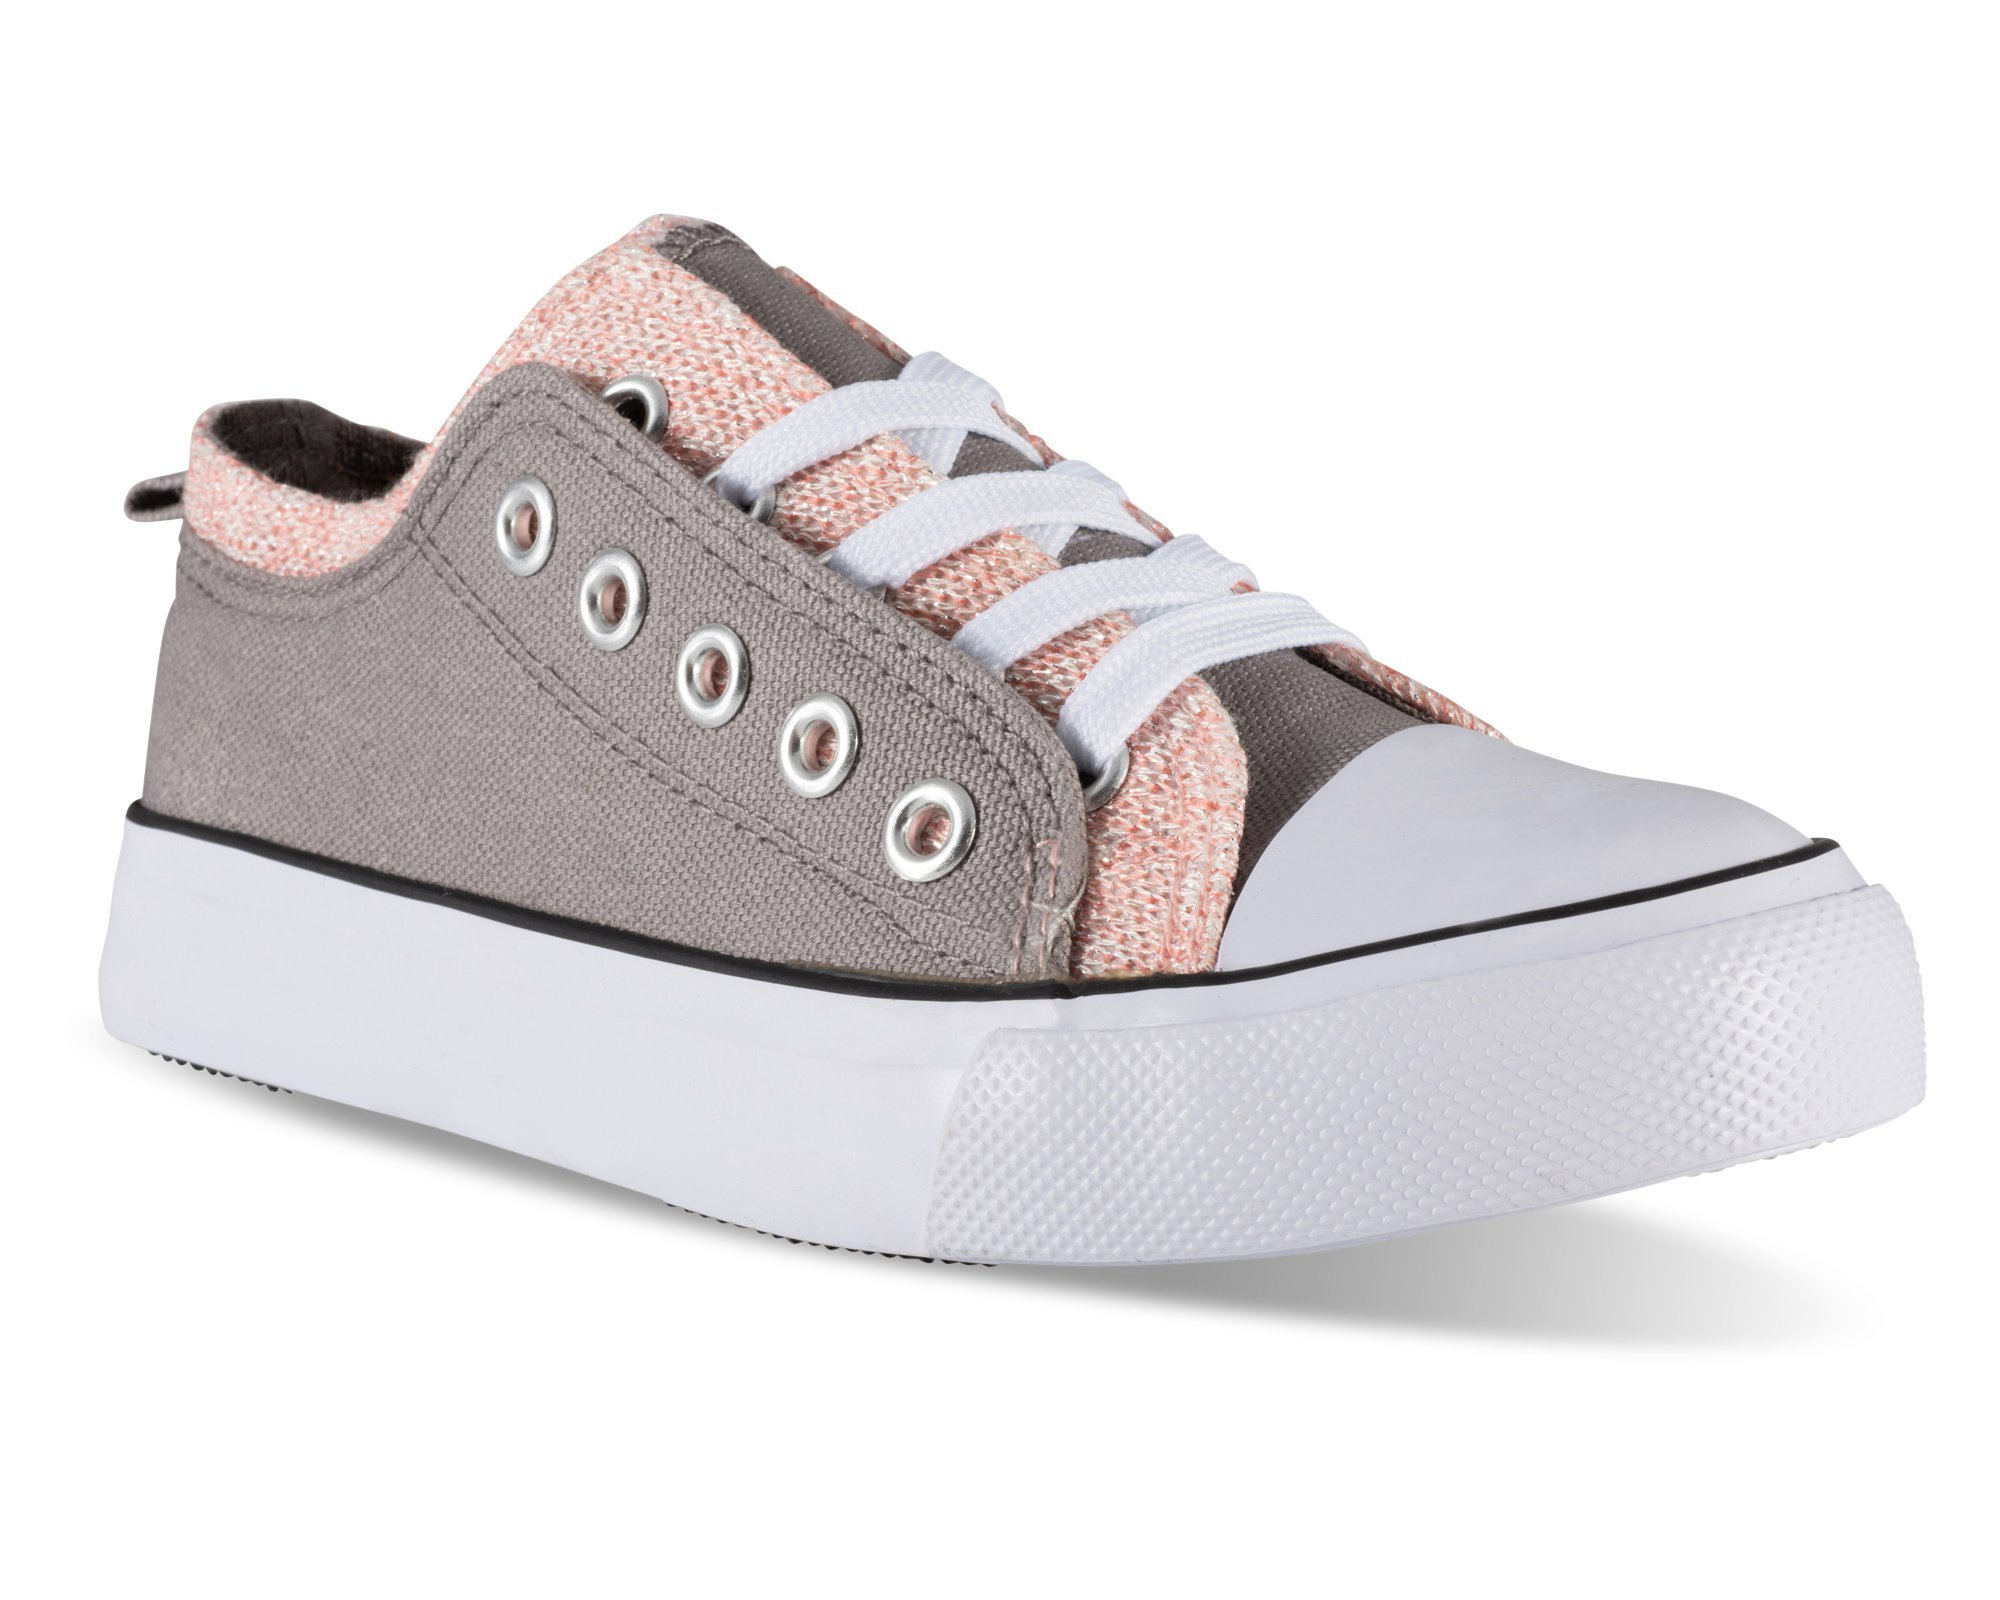 Twisted Girl's Canvas KIX Double Upper Lo-Top Sneaker - Grey/Coral, Size 4